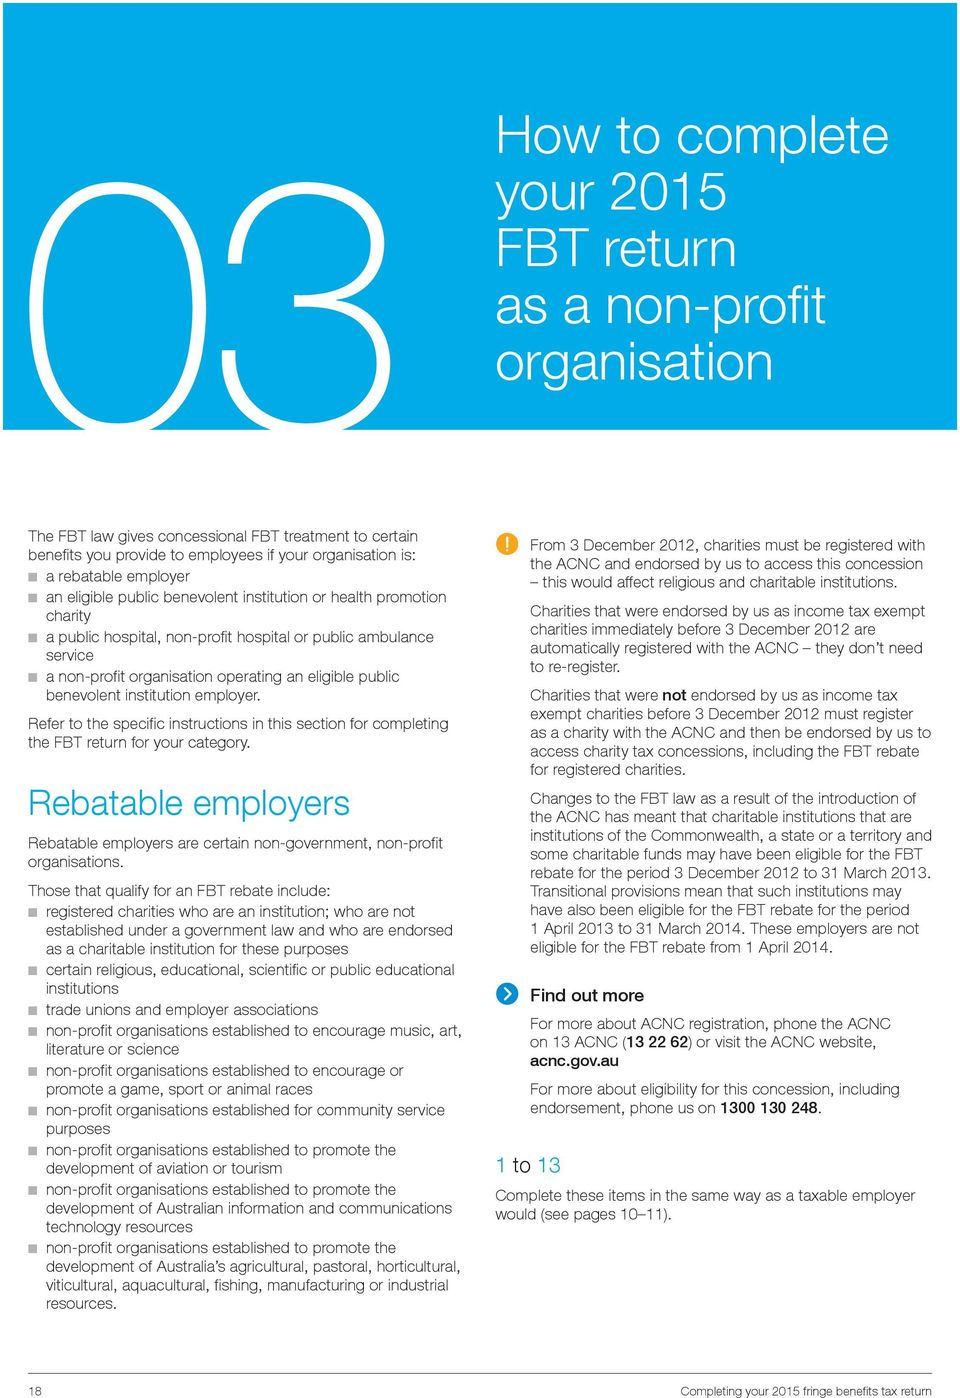 public benevolent institution employer Refer to the specific instructions in this section for completing the FBT return for your category Rebatable employers Rebatable employers are certain